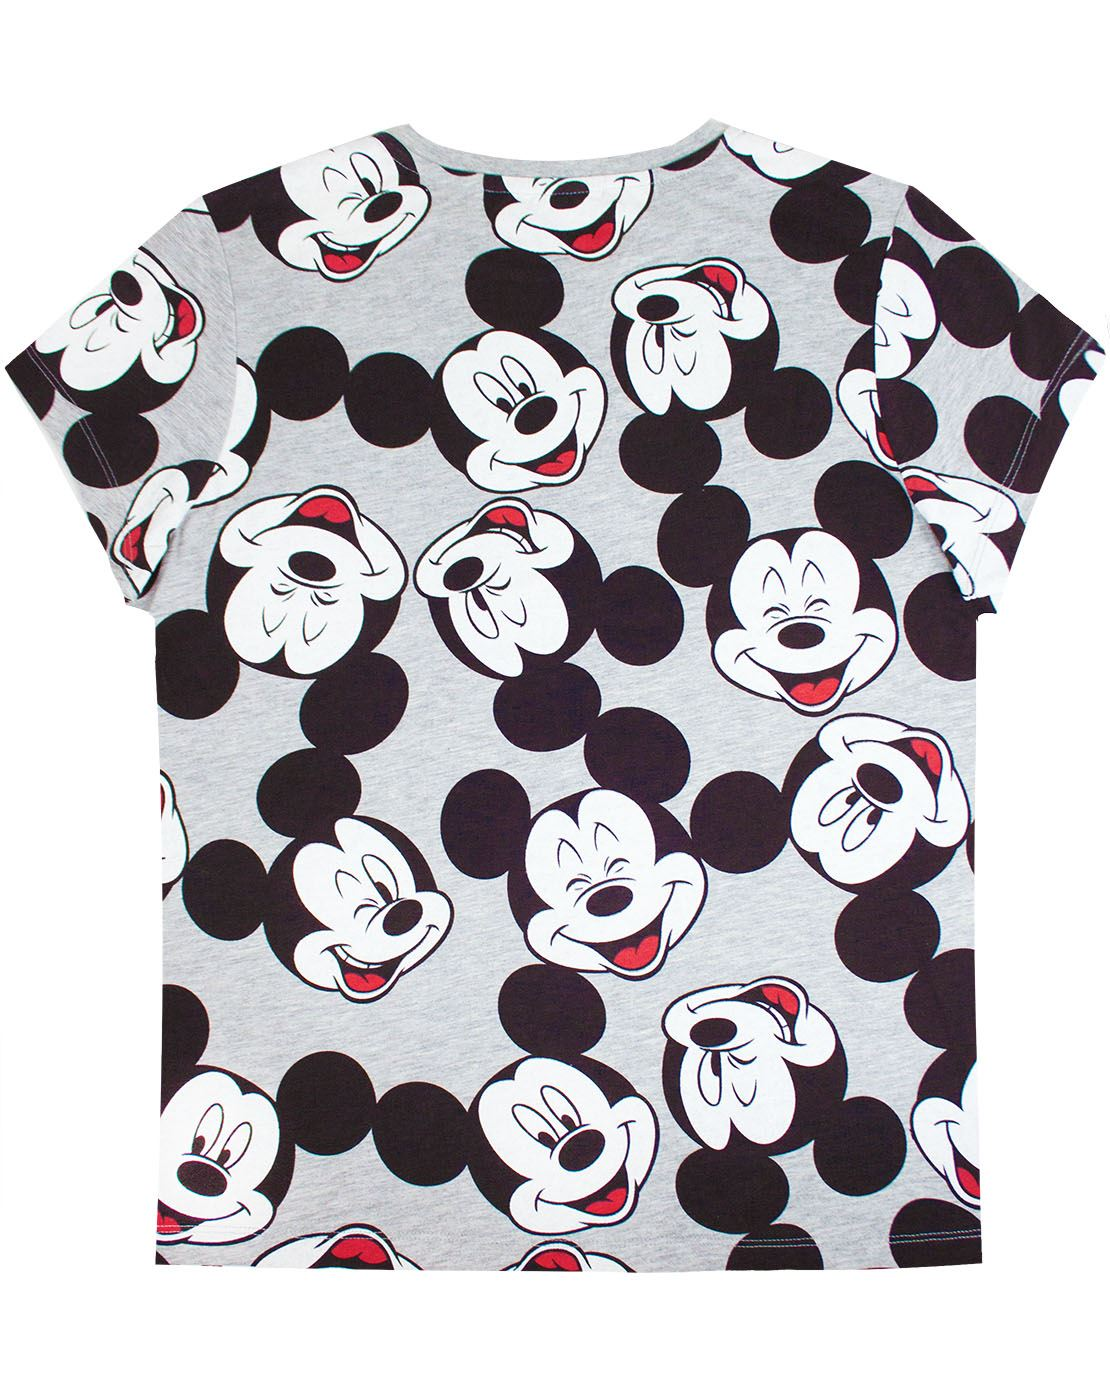 Disney-Mickey-Mouse-Character-All-Over-Women-039-s-Ladies-Boyfriend-Fit-T-Shirt thumbnail 5